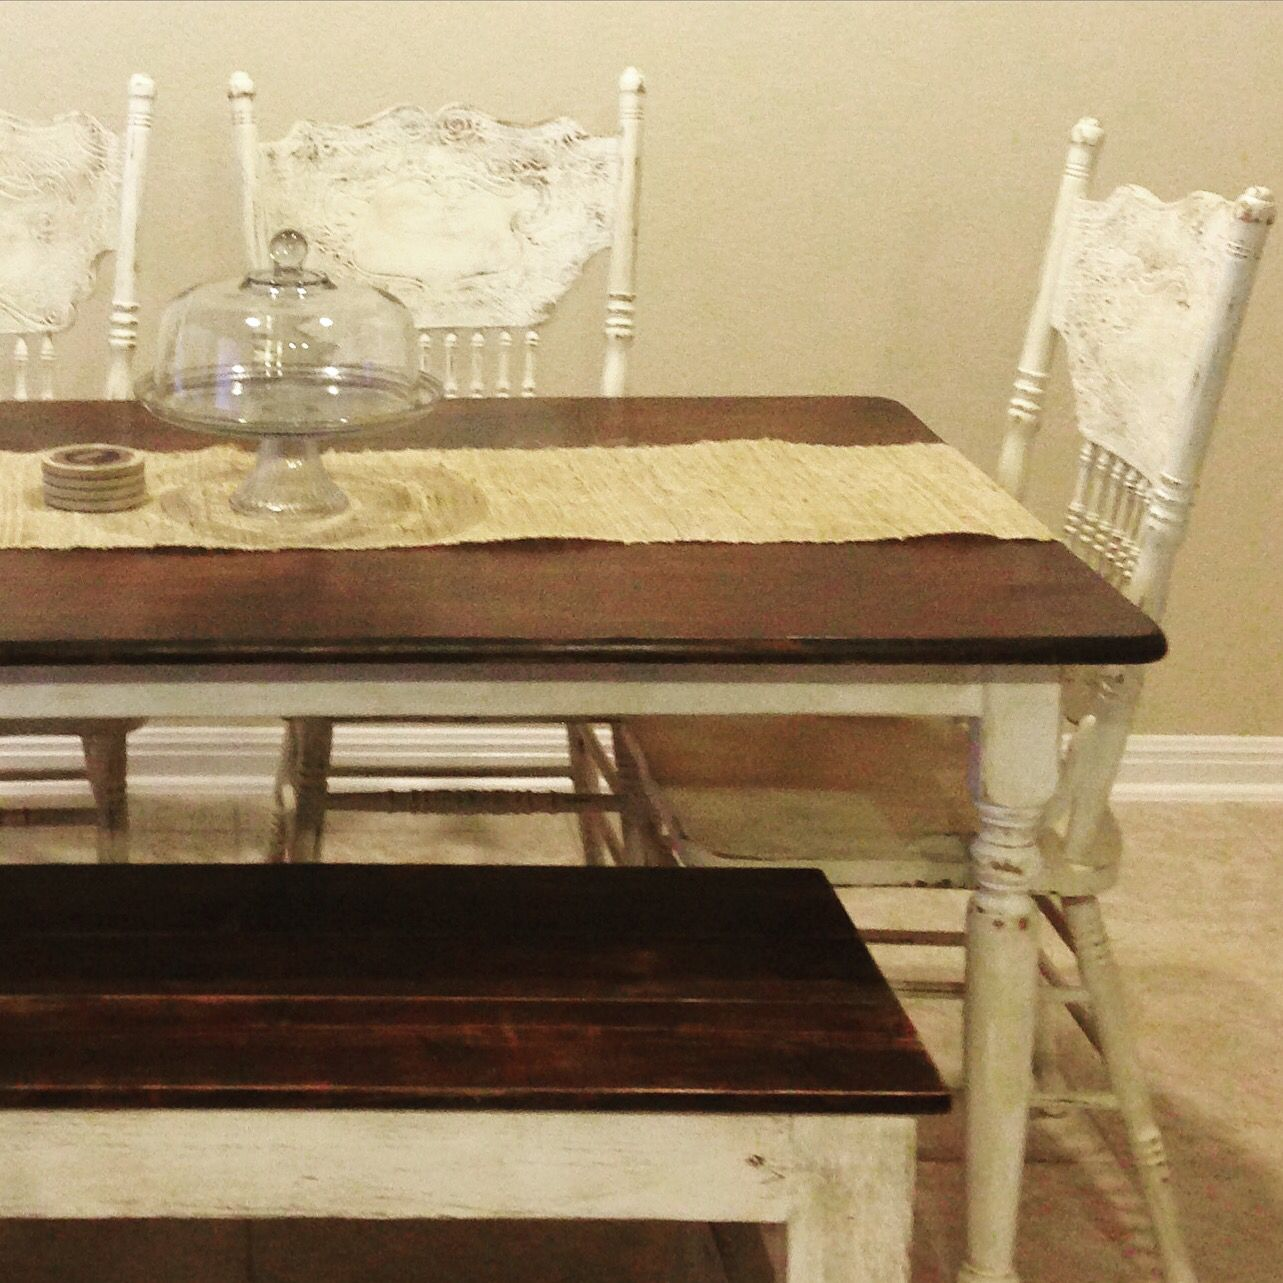 Shabby Chic Table Chairs And Bench Painted Distressed Havendesignco Shabby Chic Table Home Decor Design